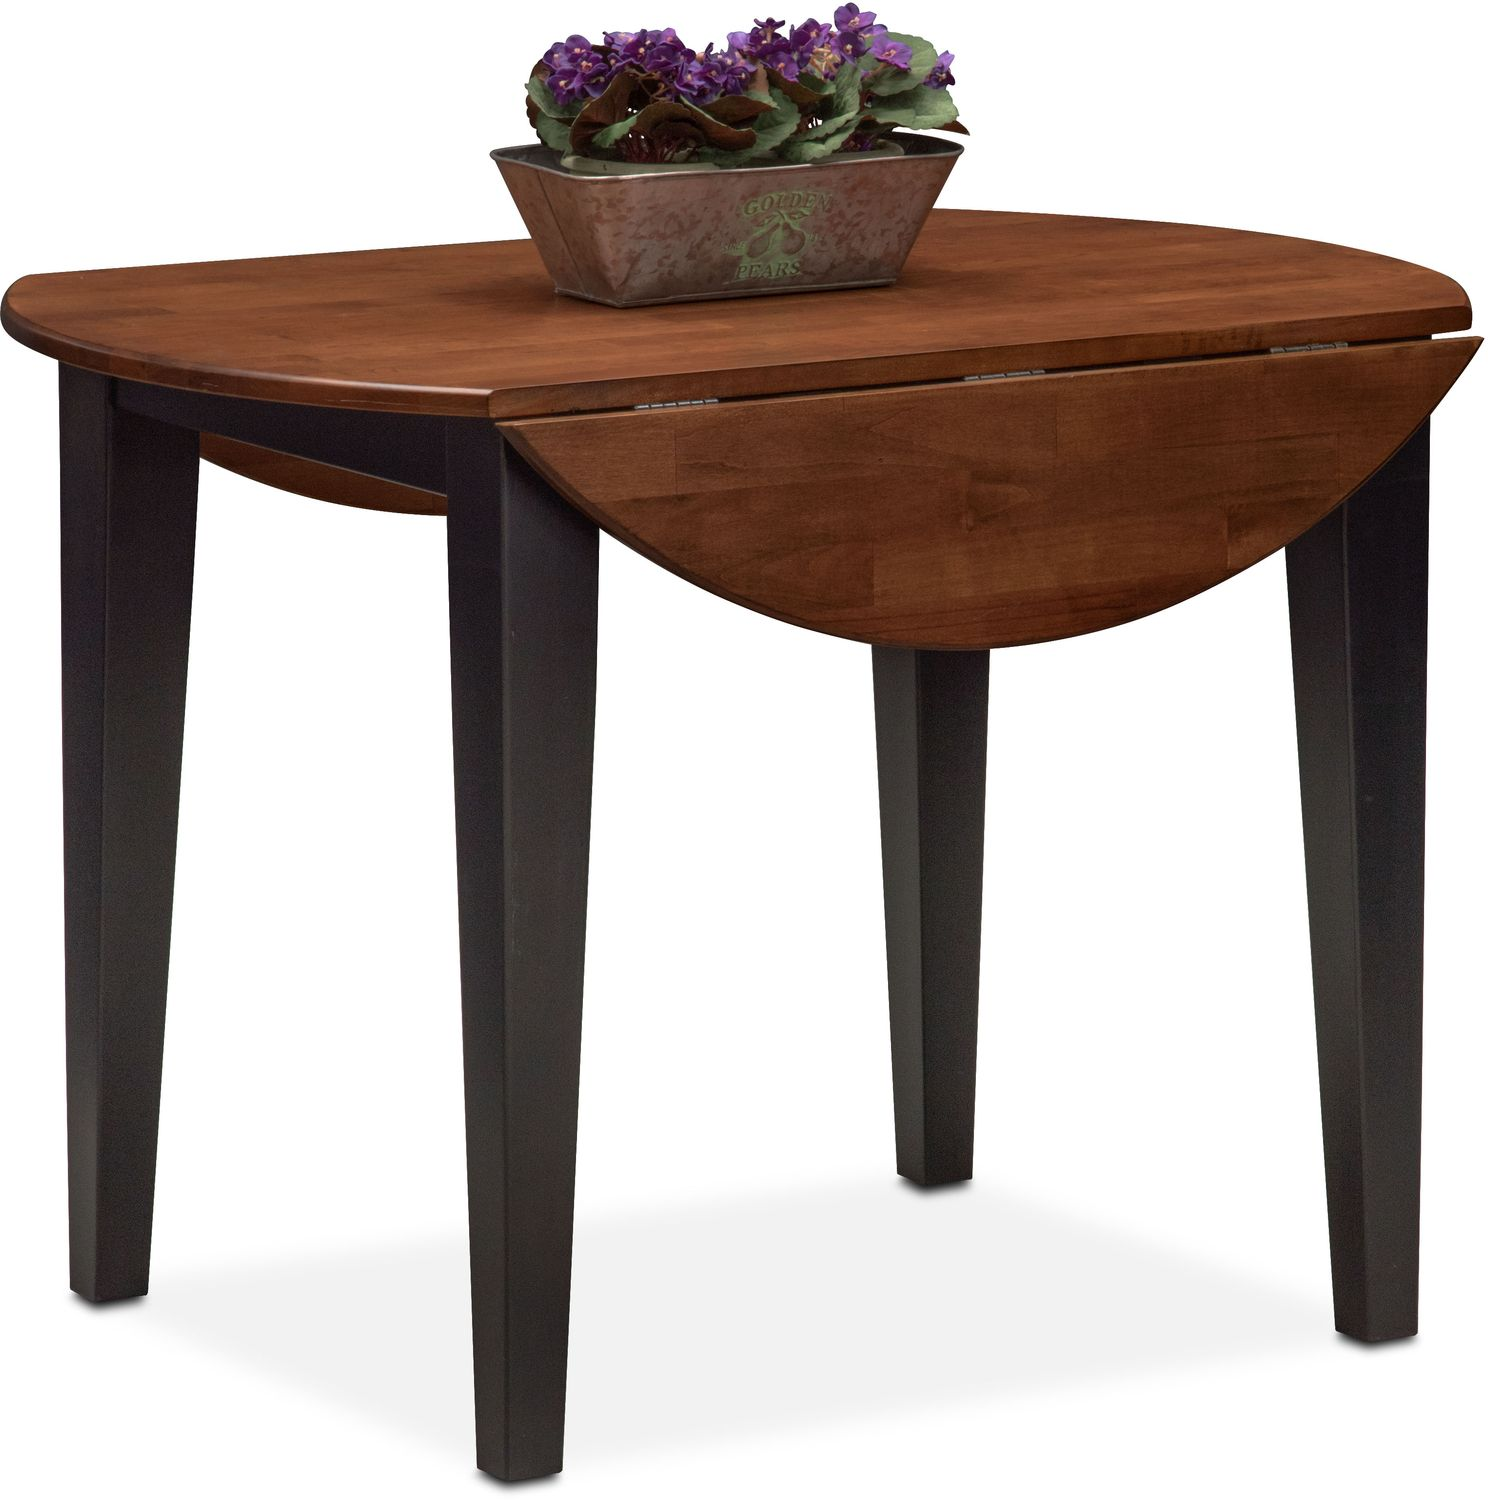 Nantucket Drop Leaf Table Black and Cherry